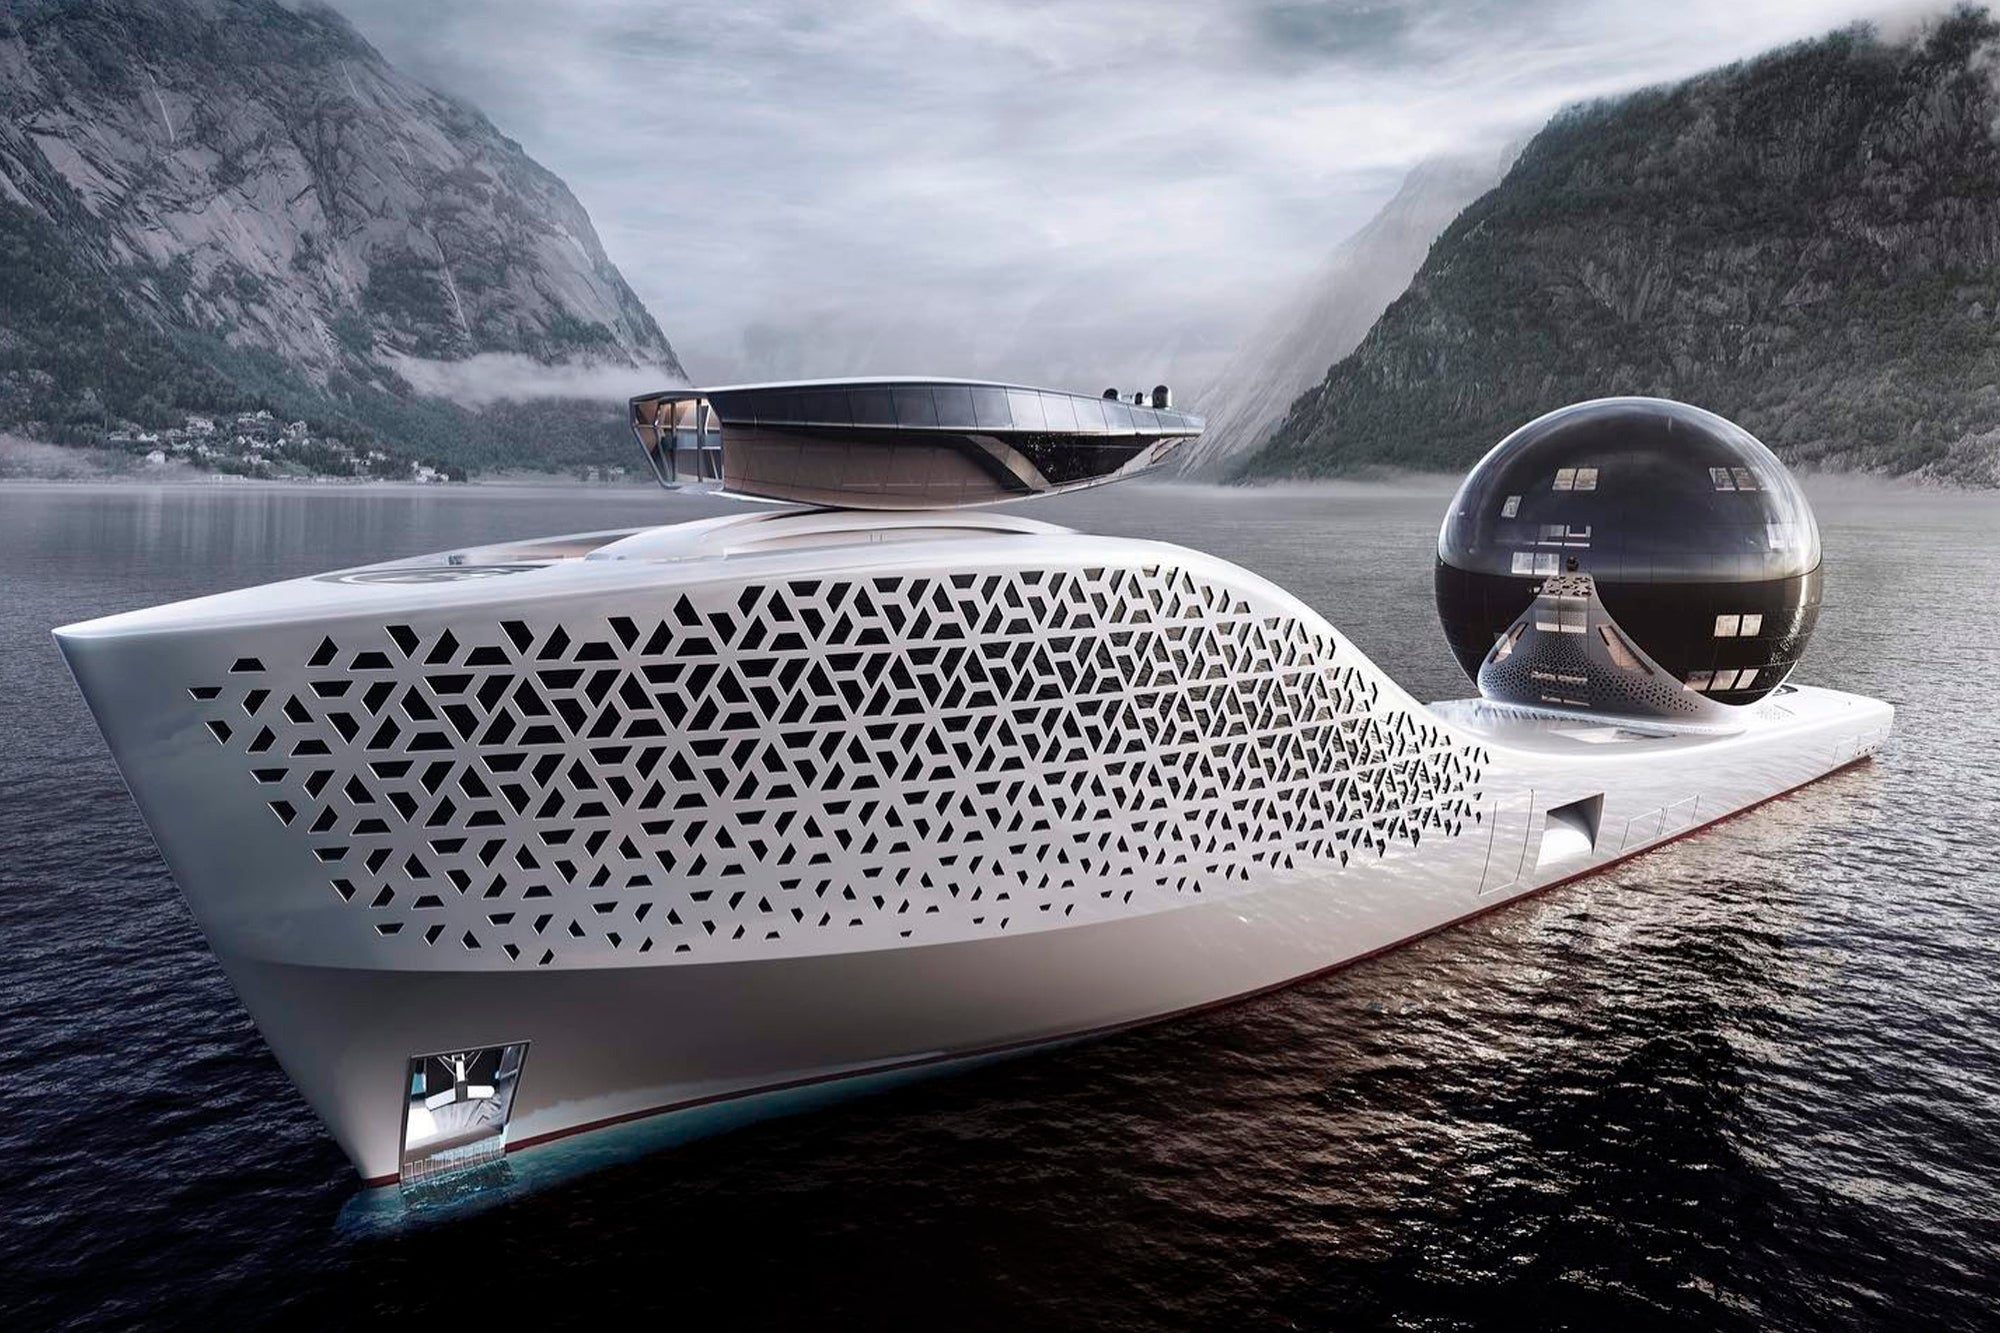 They offer nuclear yacht tours full of millionaires, scientists and celebrities for